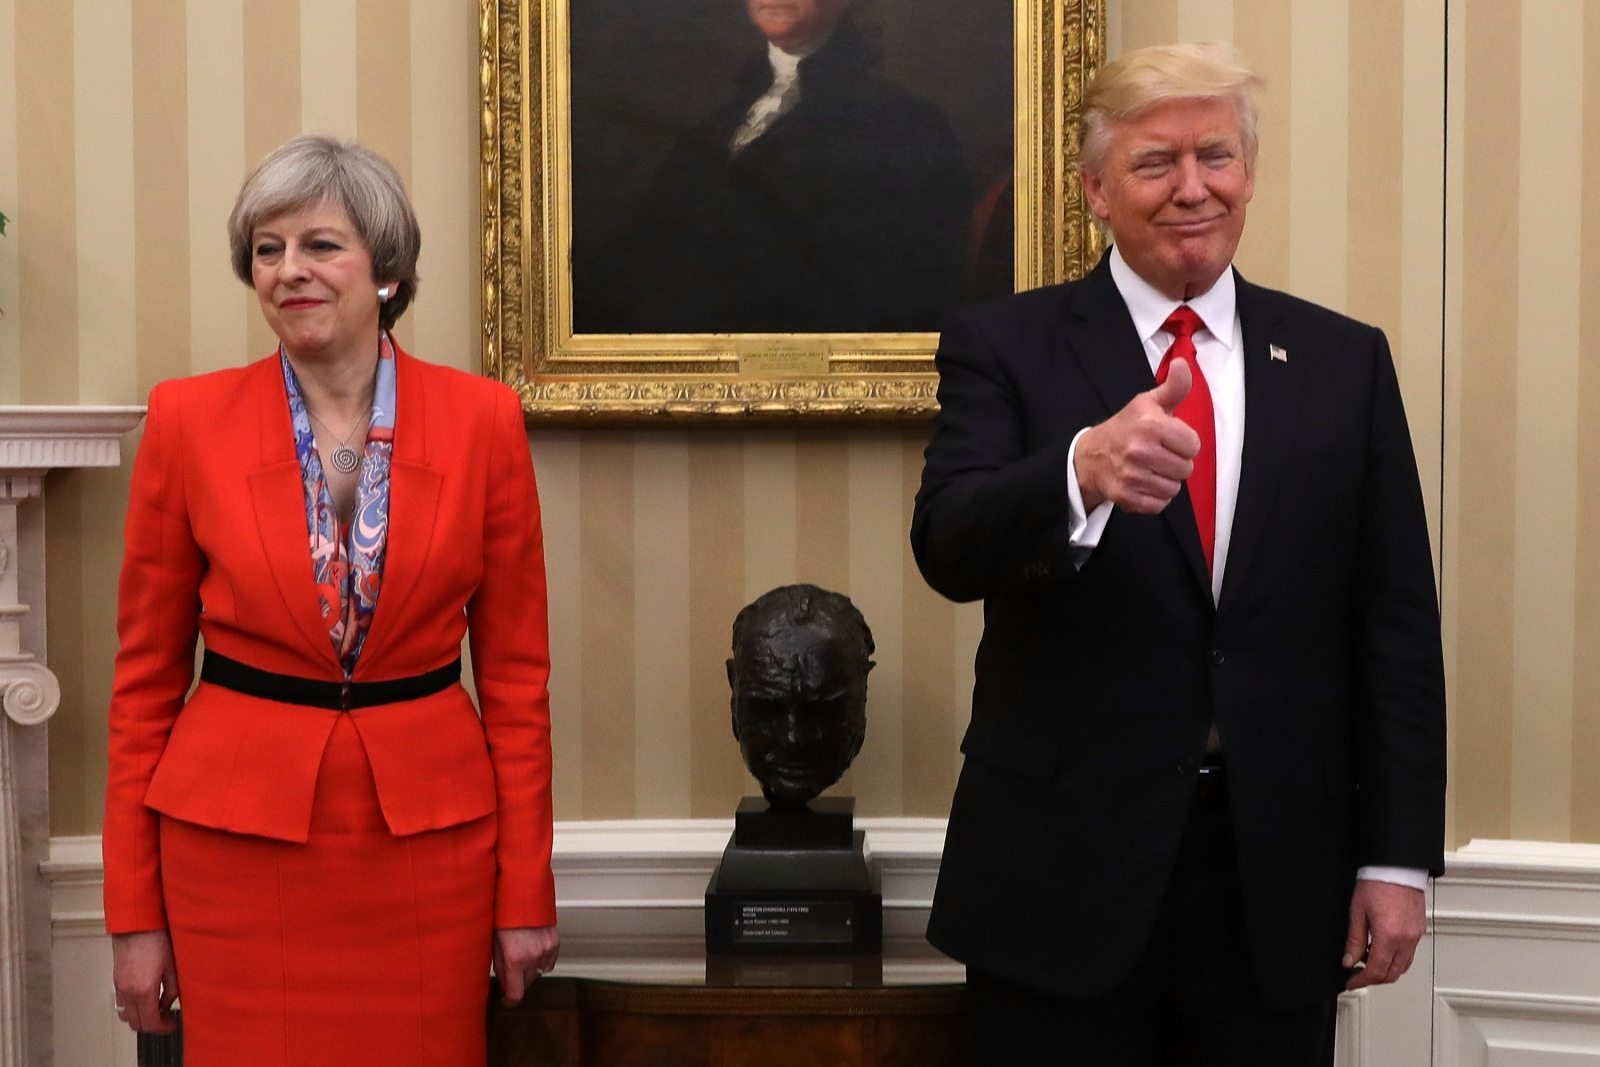 Donald Trump Receives State Visit Invite By Theresa May